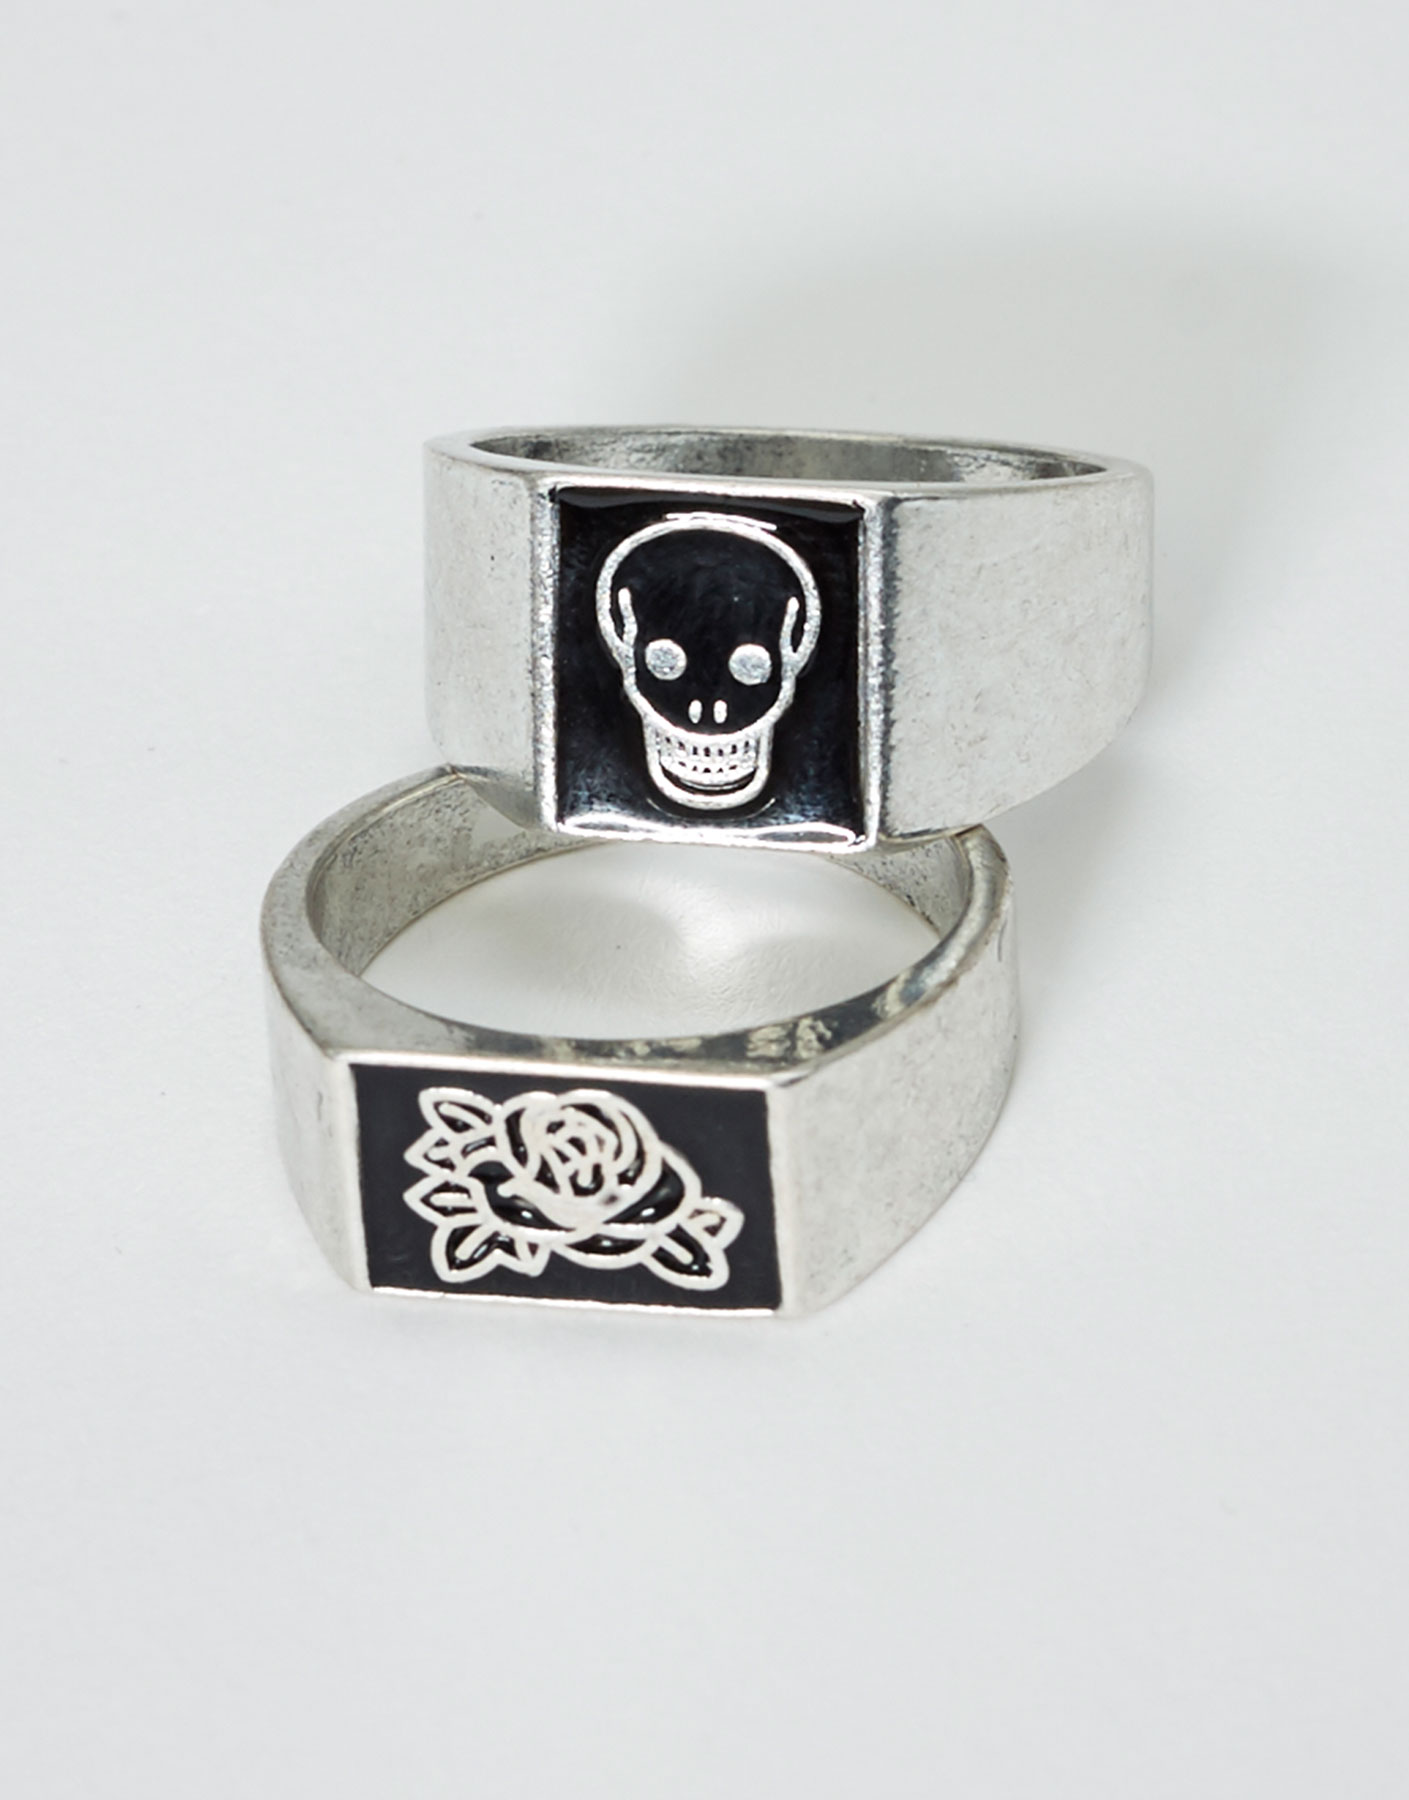 2-pack of rings